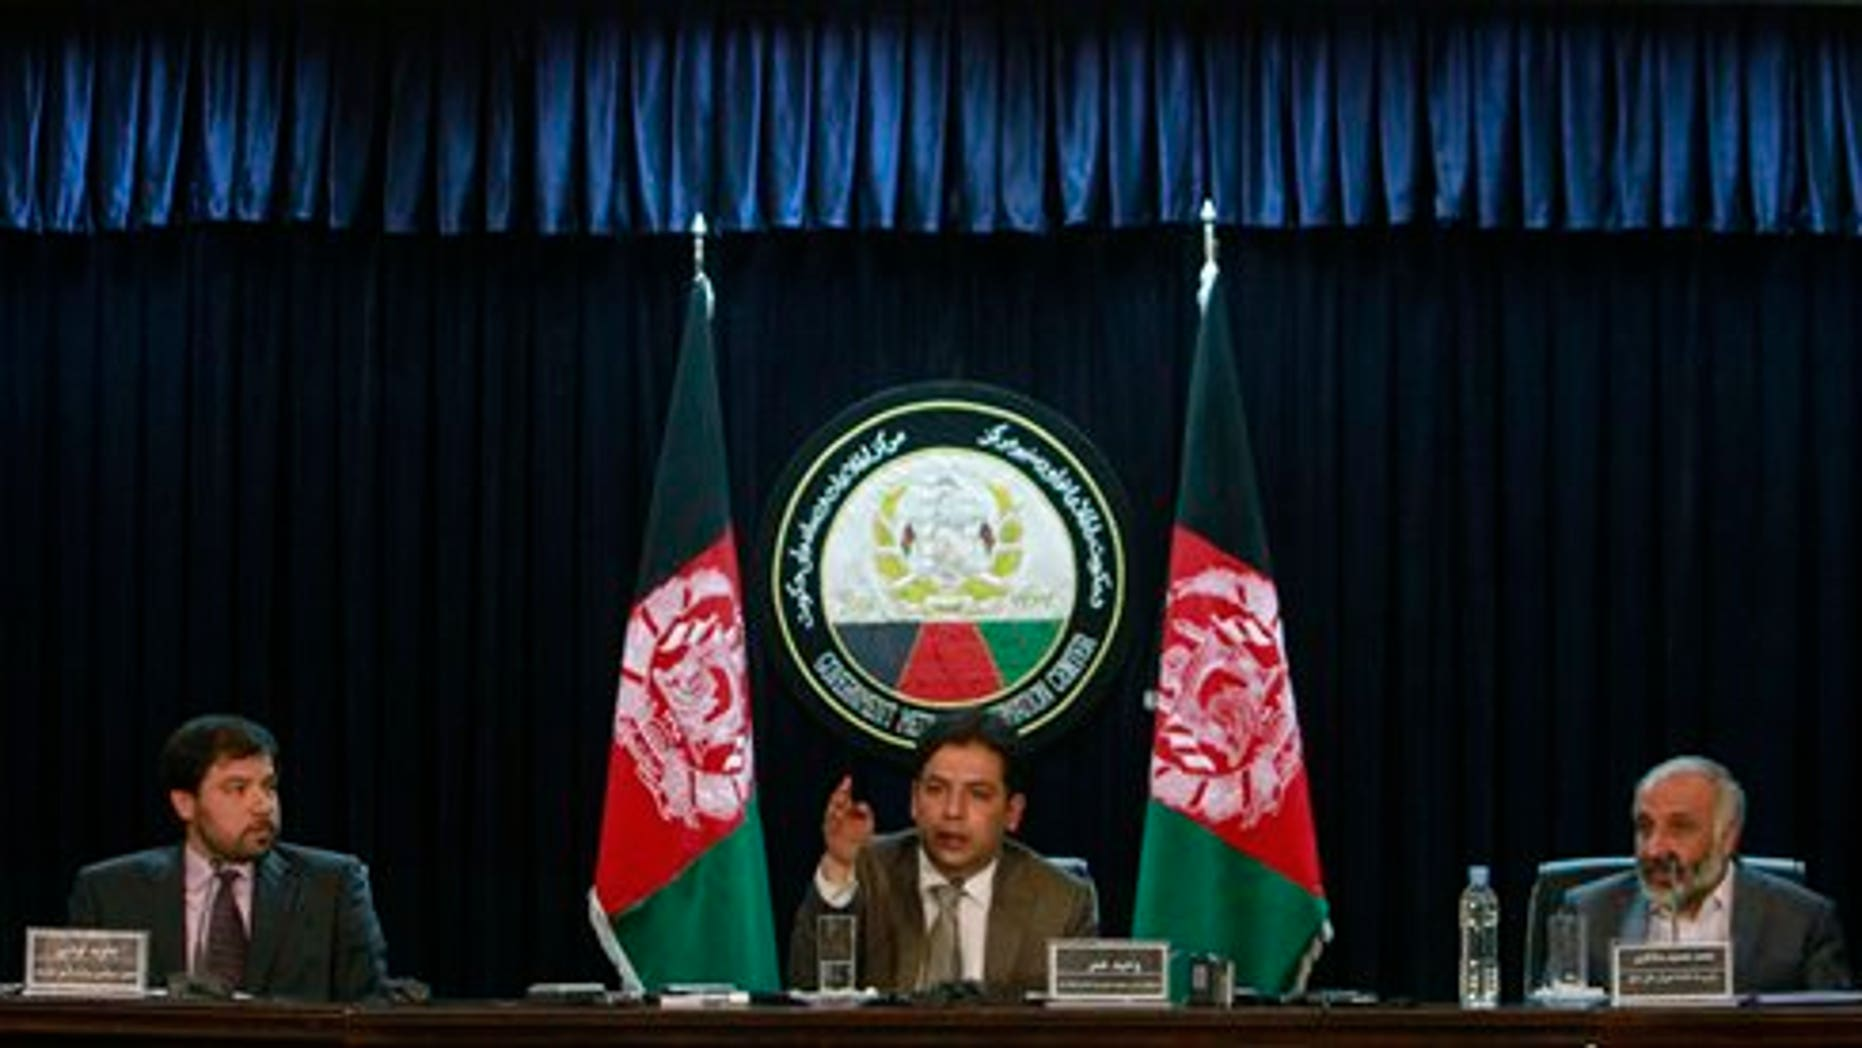 June 12: Afghan presidential spokesman Waheed Omar, center, speaks as Afghan Deputy Foreign Minister Jawid Luddin, left, and Masoom Stanekzai, right, secretary of a peace council set up by President Hamid Karzai listen during a press conference in Kabul, Afghanistan.